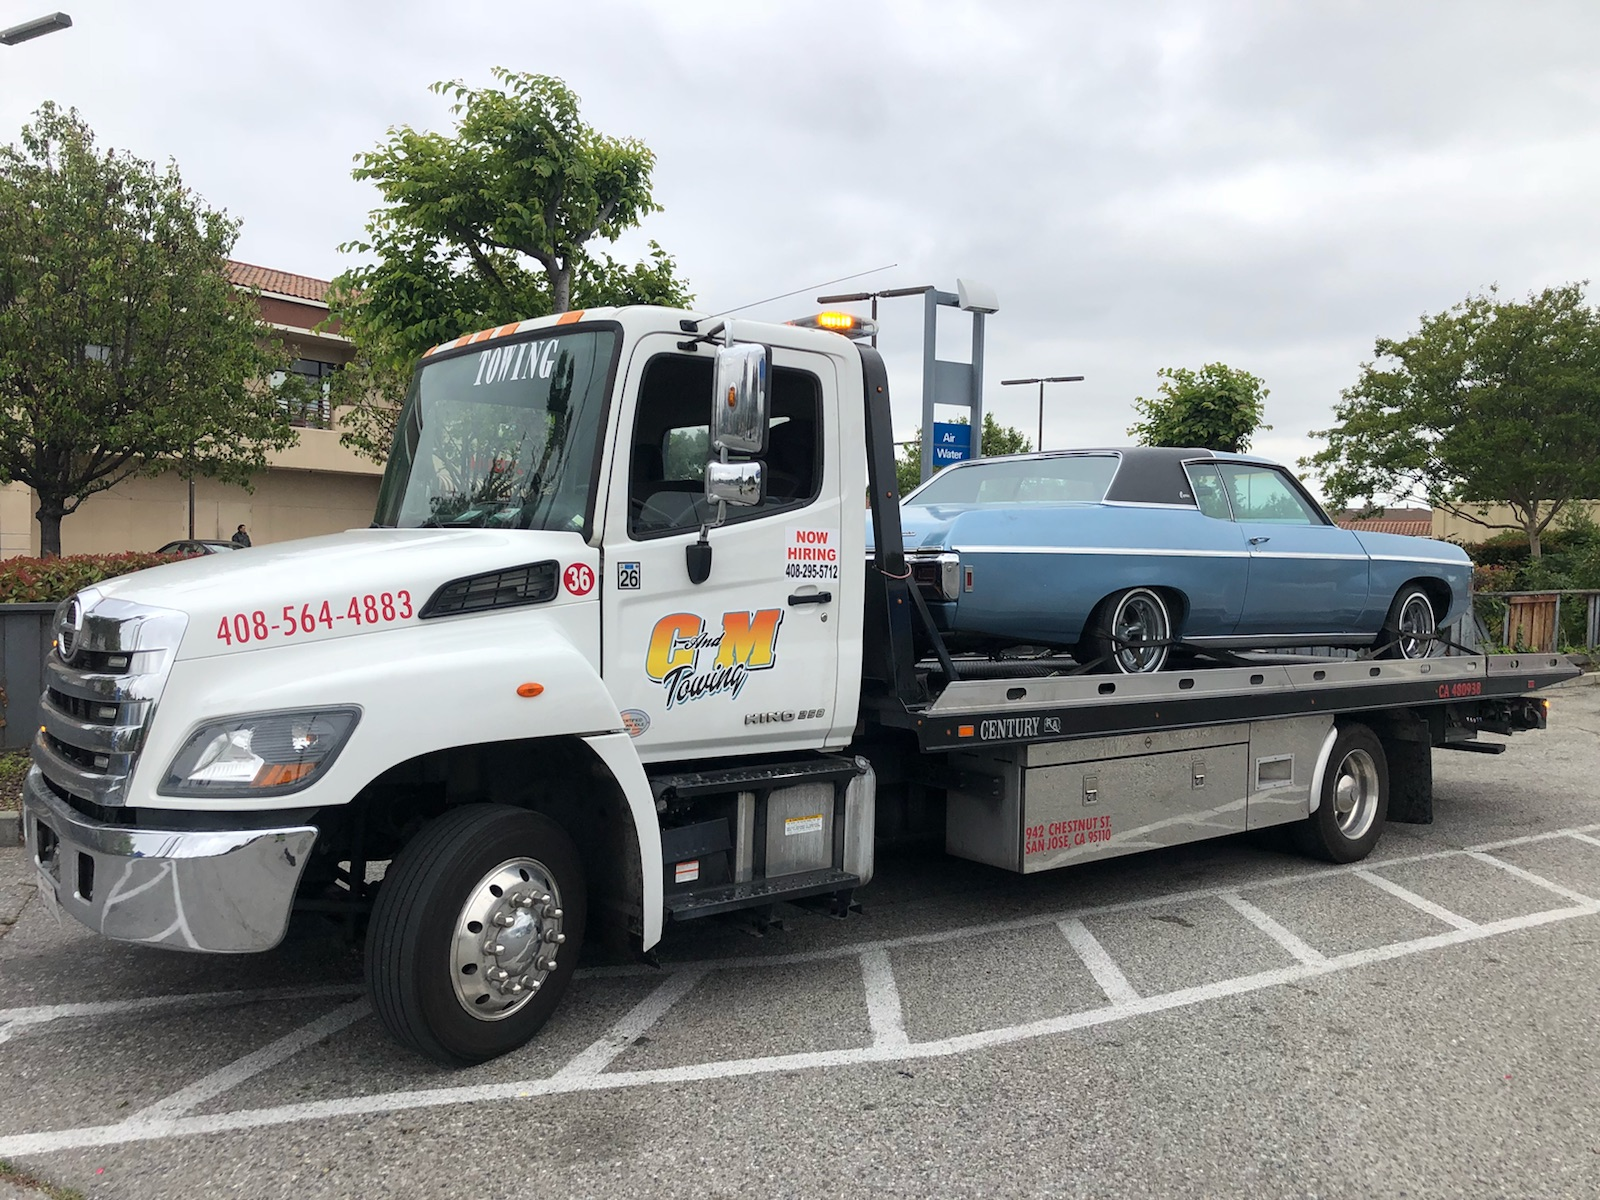 Towing Services Can Be Great Aid in Emergency